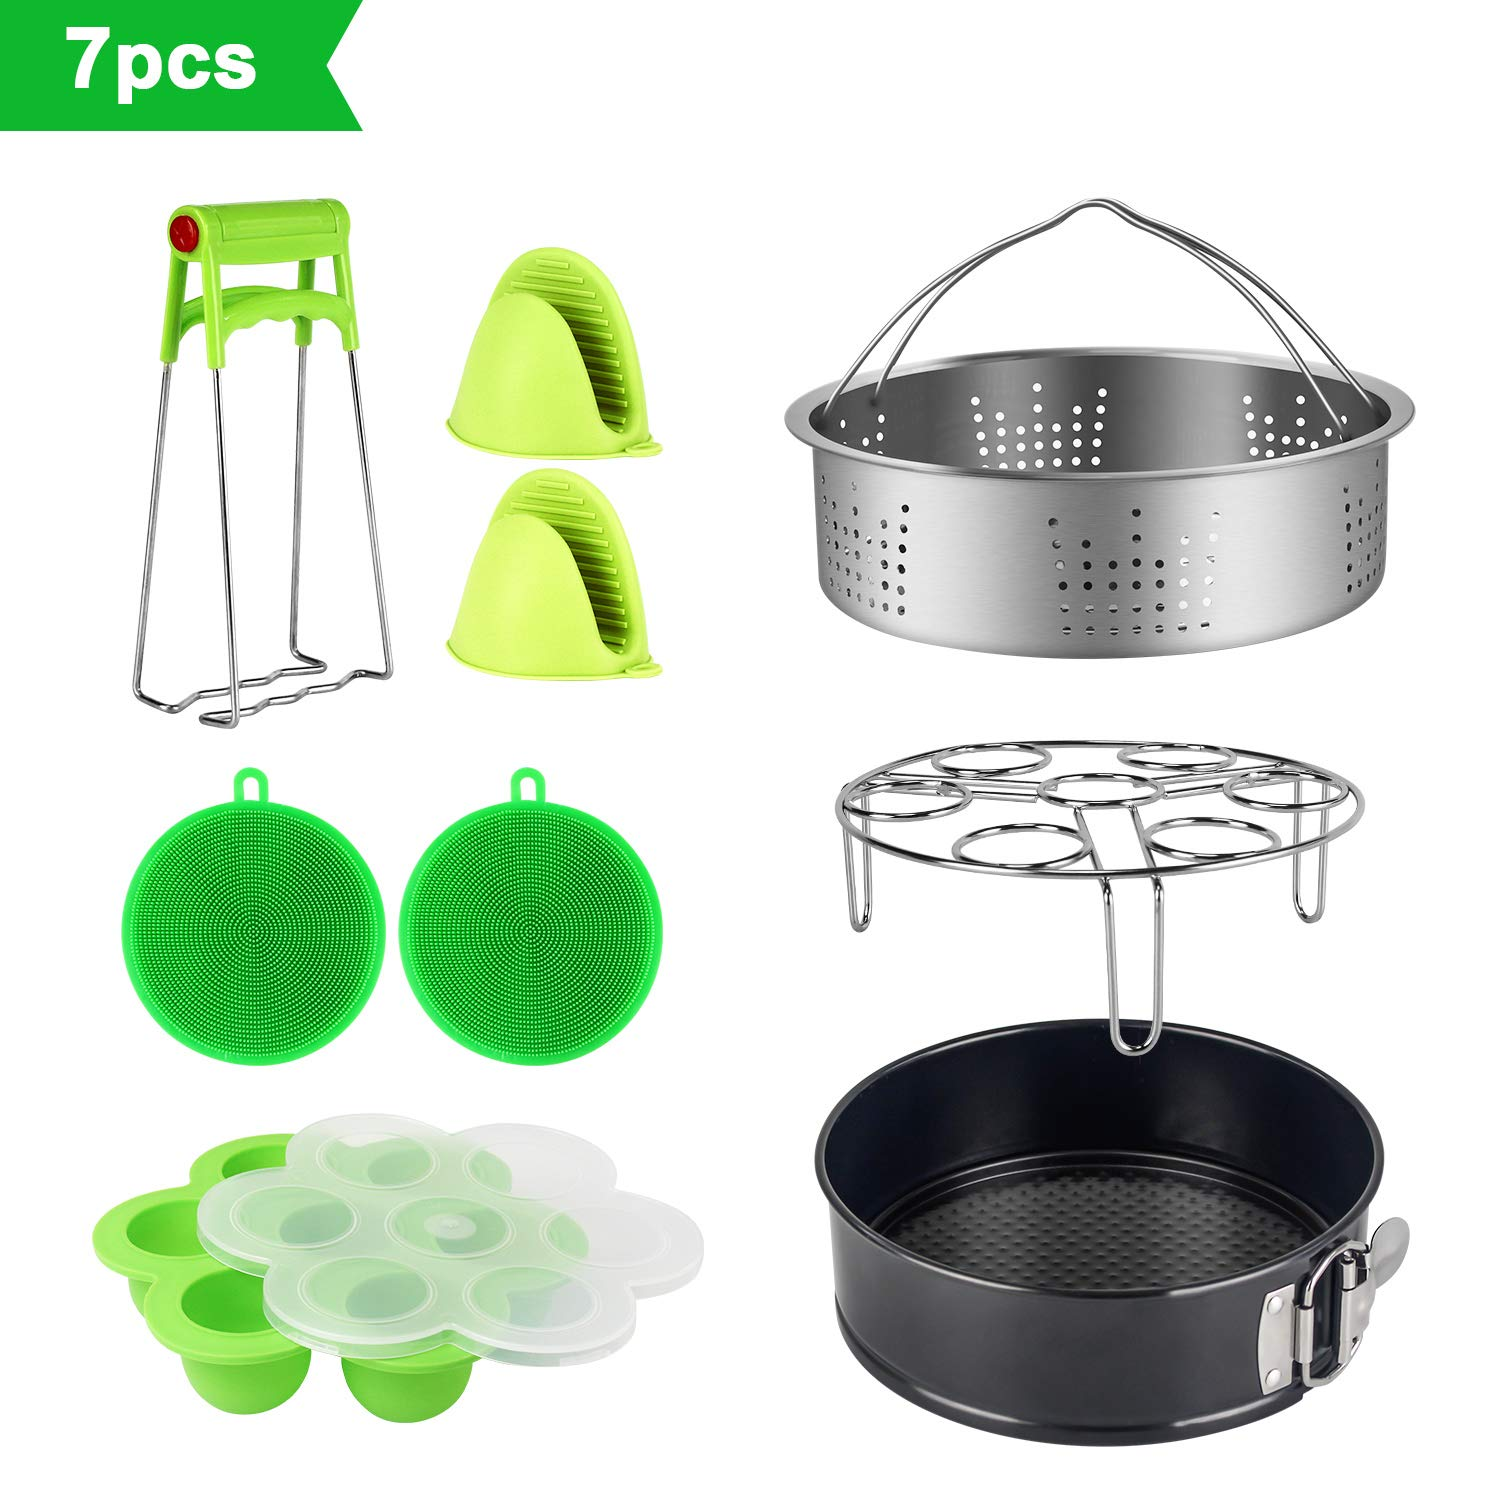 Instant Pot Accessories Set for 6,8Qt - With Standard Stainless Steel Steamer Basket, Non-Stick Springform Pan, Egg Steamer Rack, Silicone Egg Bites Mold, Oven Mitts, Bowl Clip and Silicone Scrub Pad SySrion